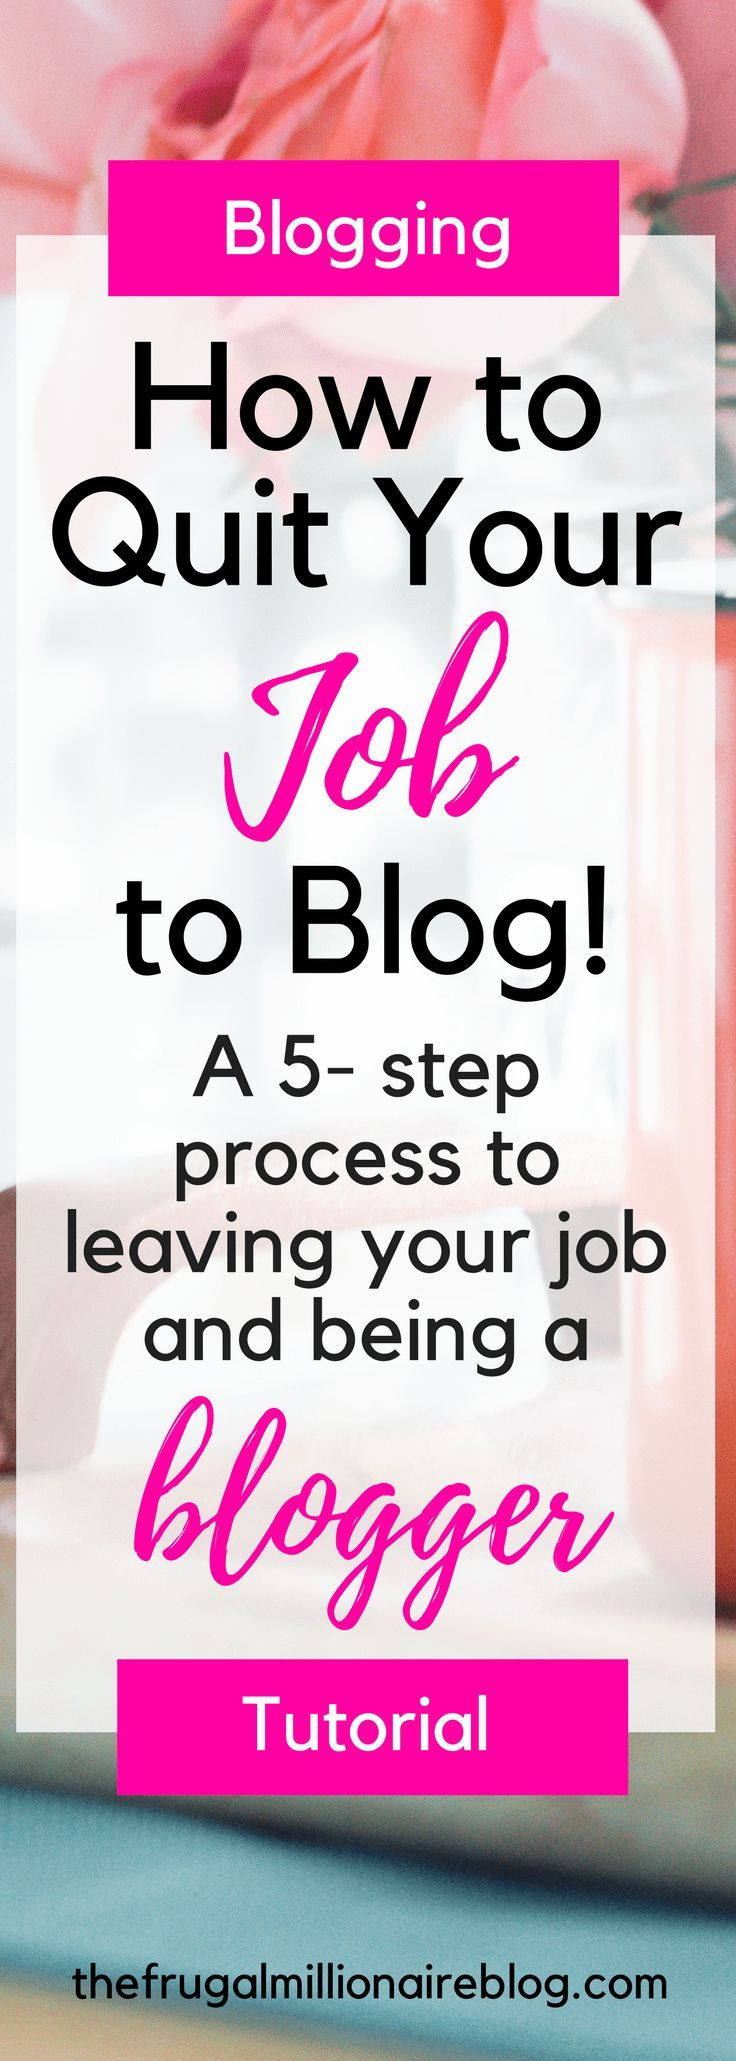 Do you want to quit your full-time job to blog?! Here's an awesome five-step process to building a profitable blog. Enjoy!!